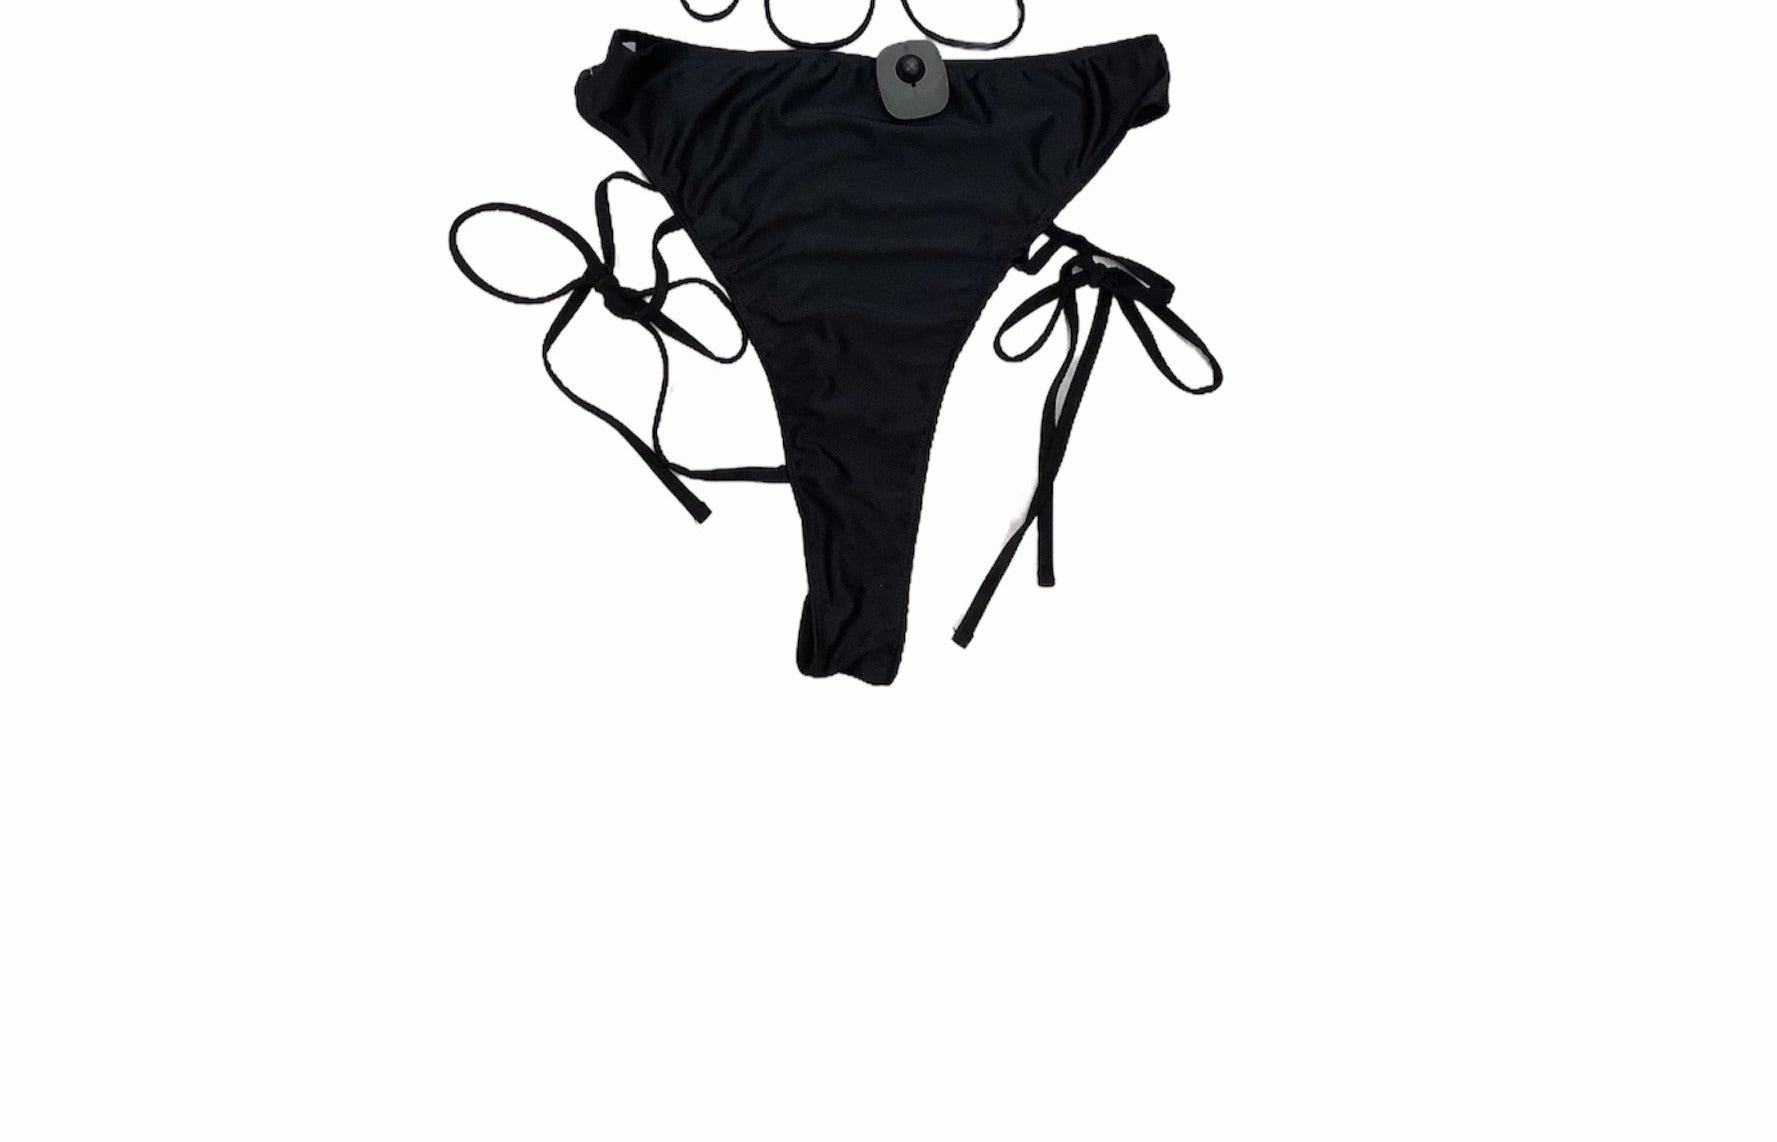 NWT Pretty Little Thing Bikini Bottom - NWT PLT BLACK BIKINI BOTTOM WITH STRAP DETAILS